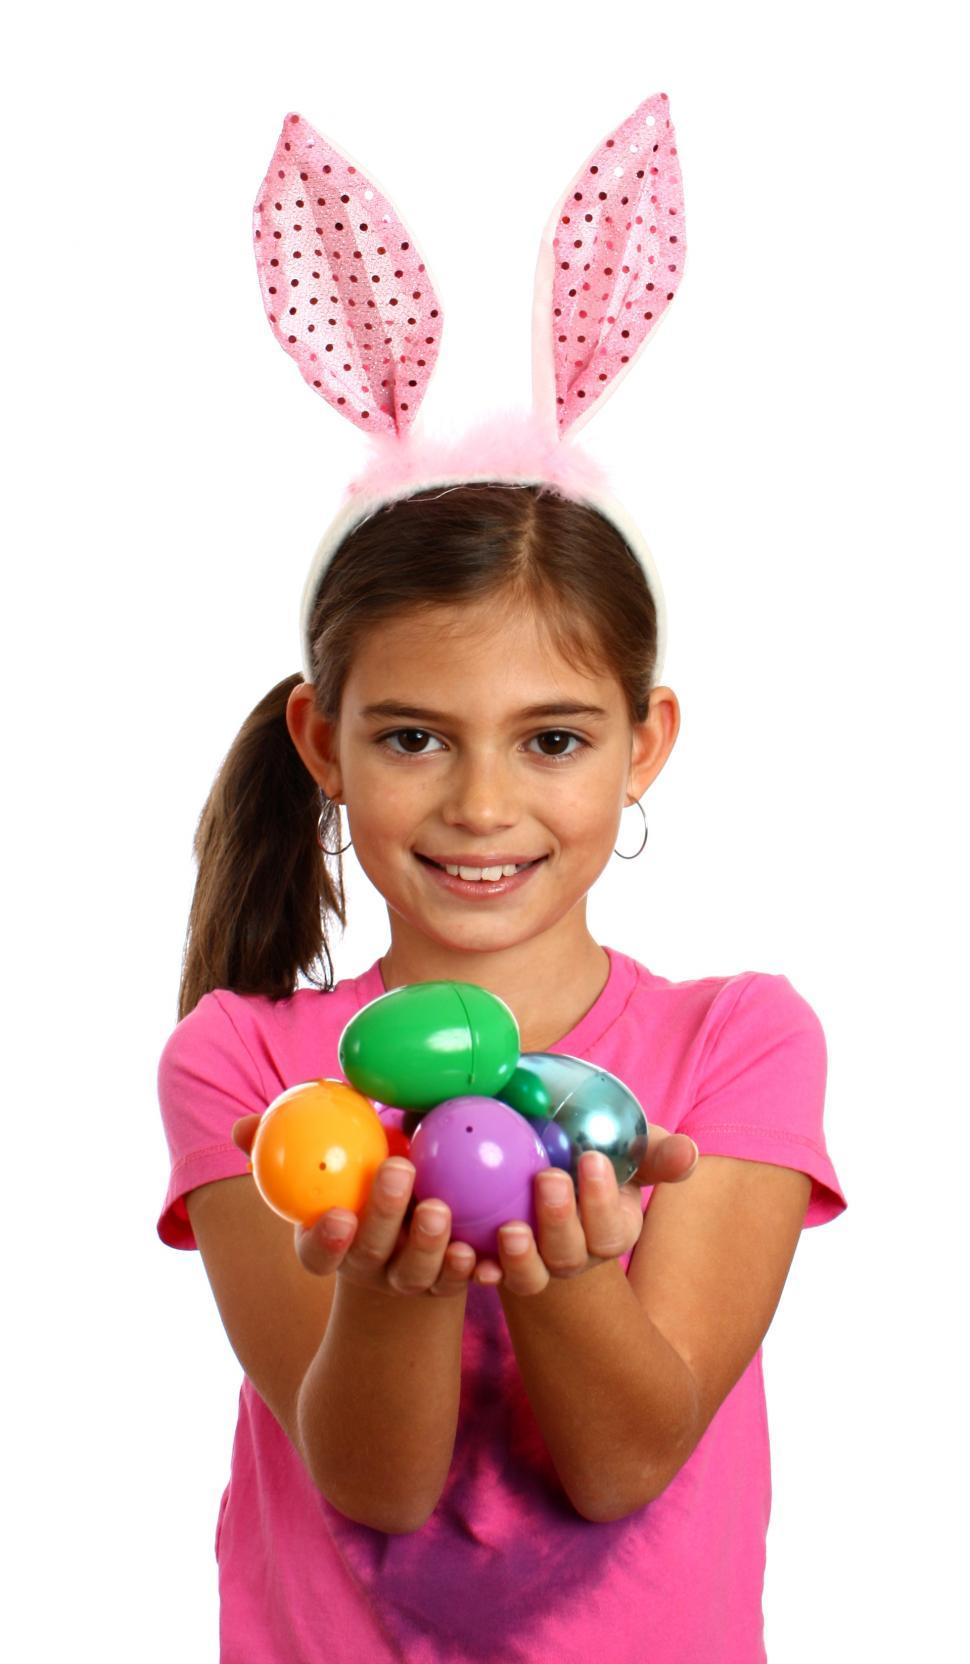 Download Free Stock HD Photo of A cute young girl holding Easter eggs Online